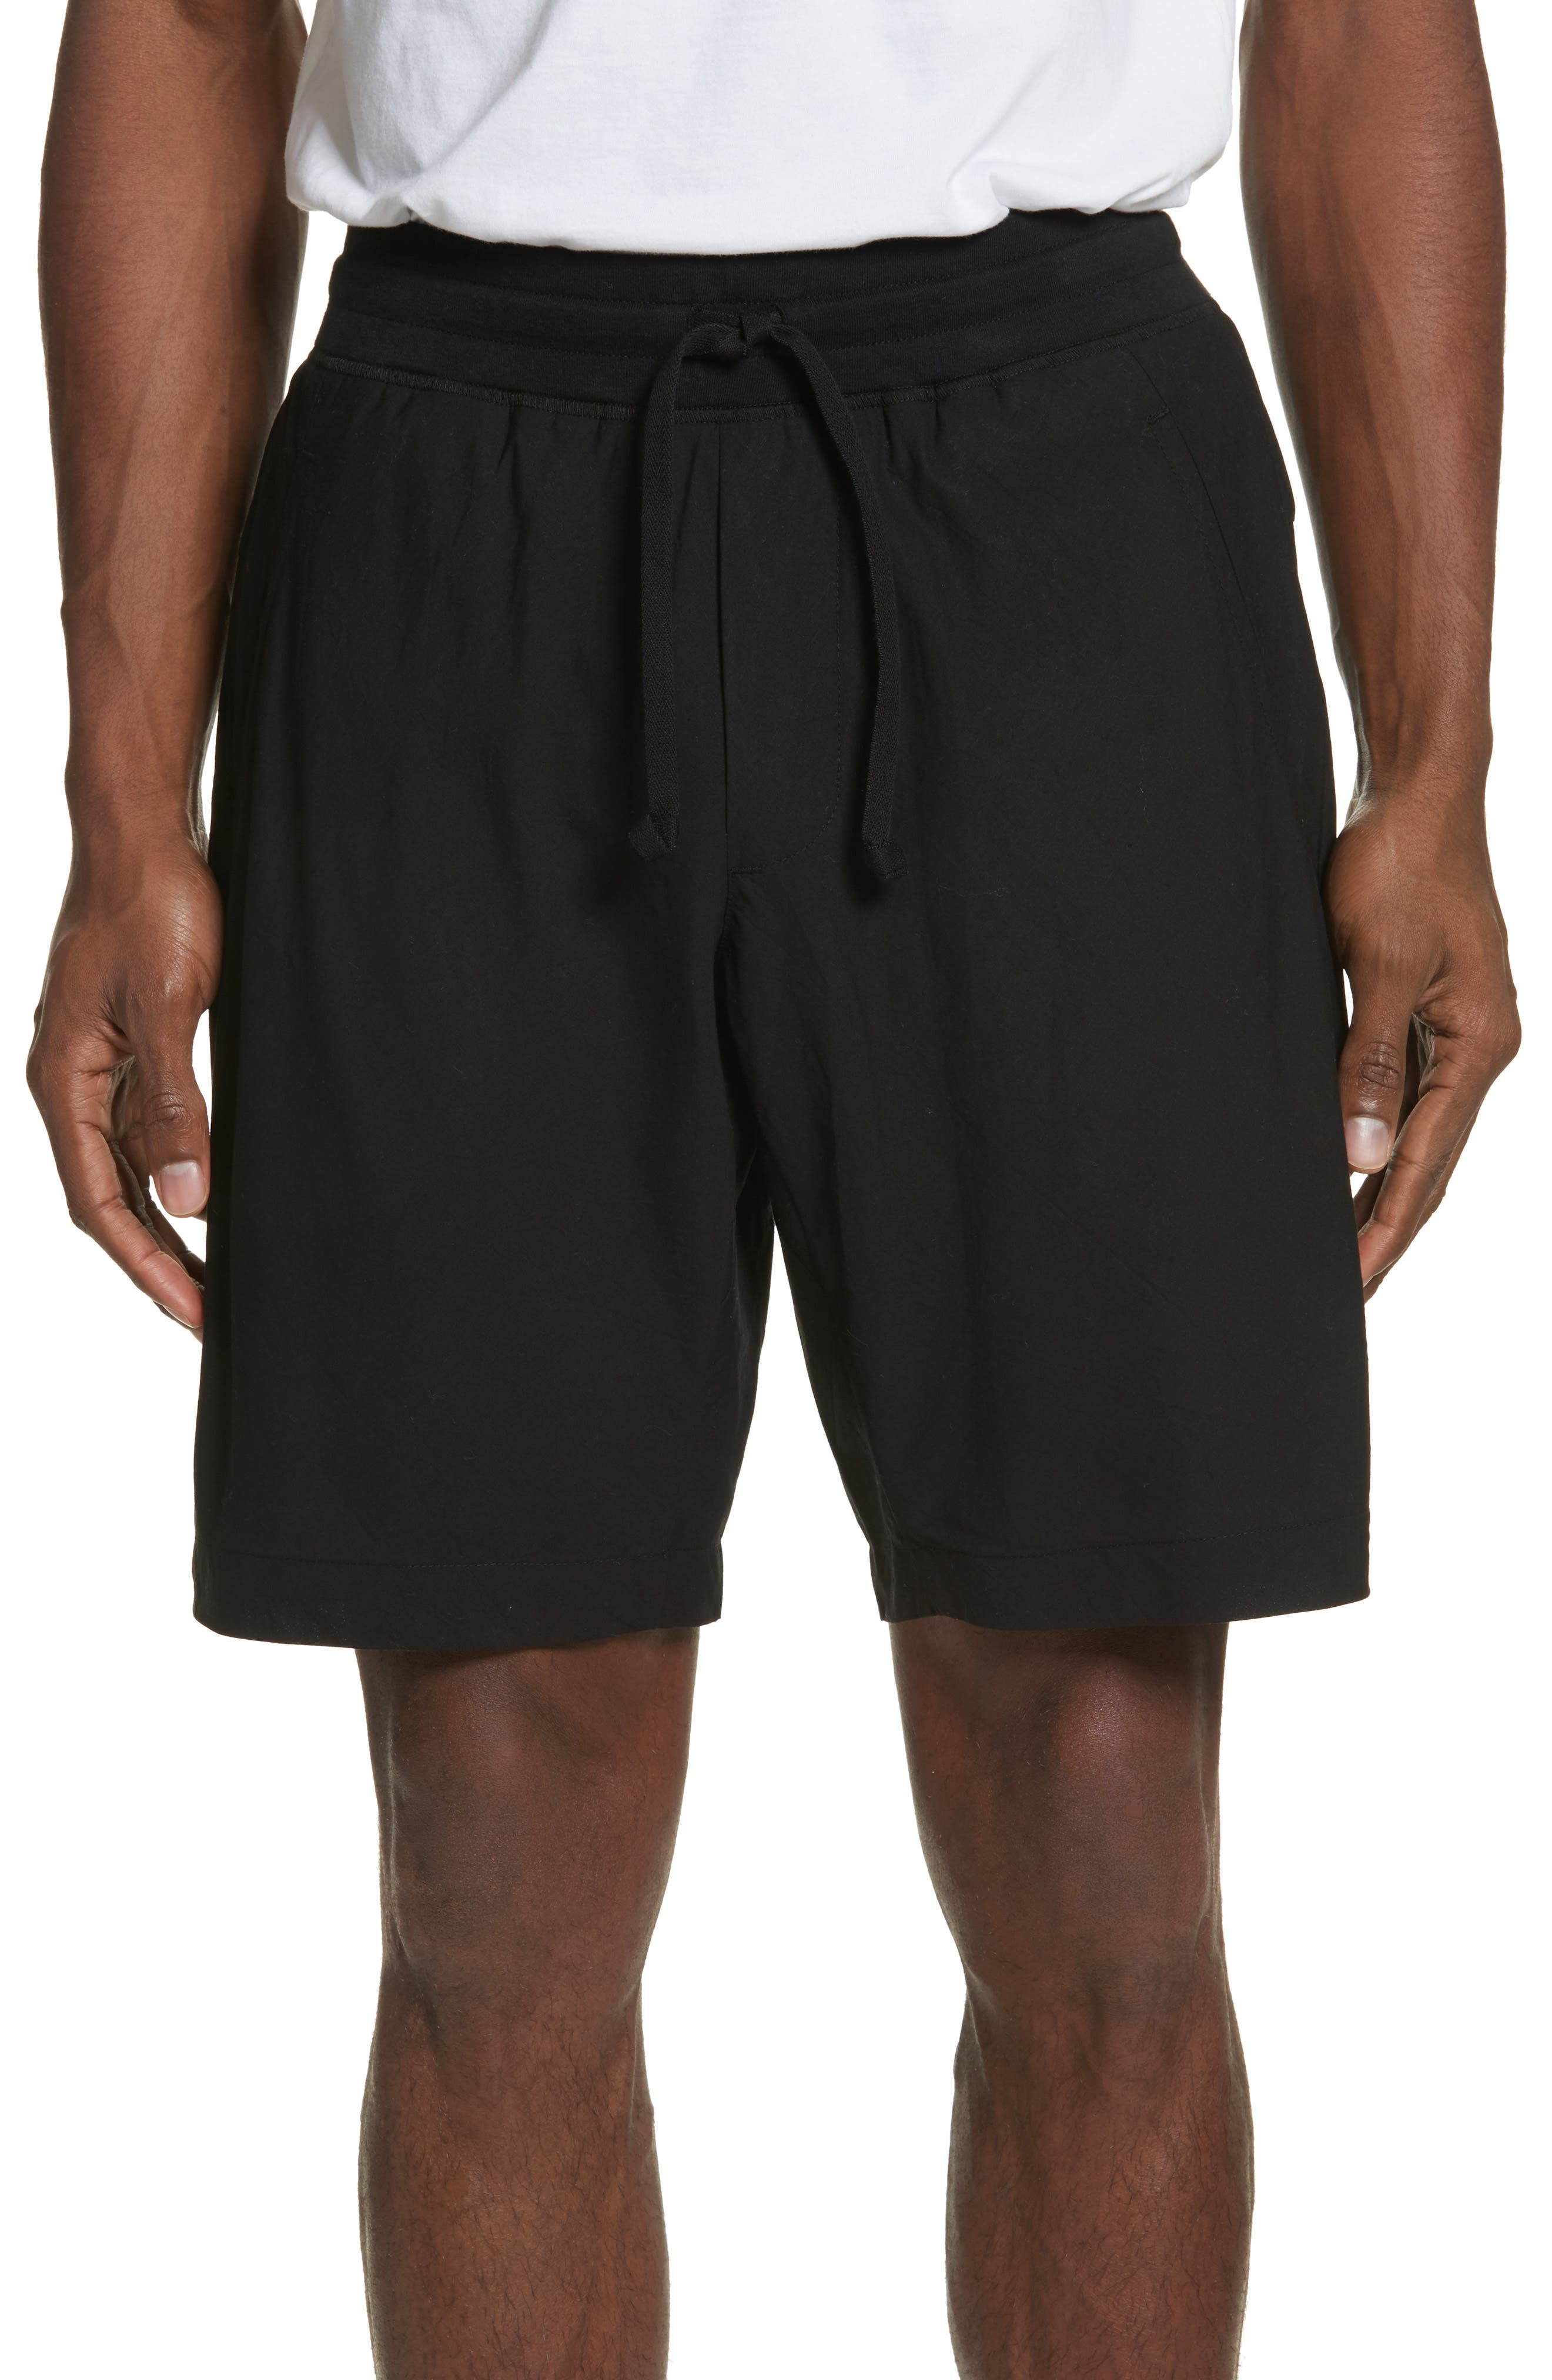 Overlay Shorts,                         Main,                         color, Black